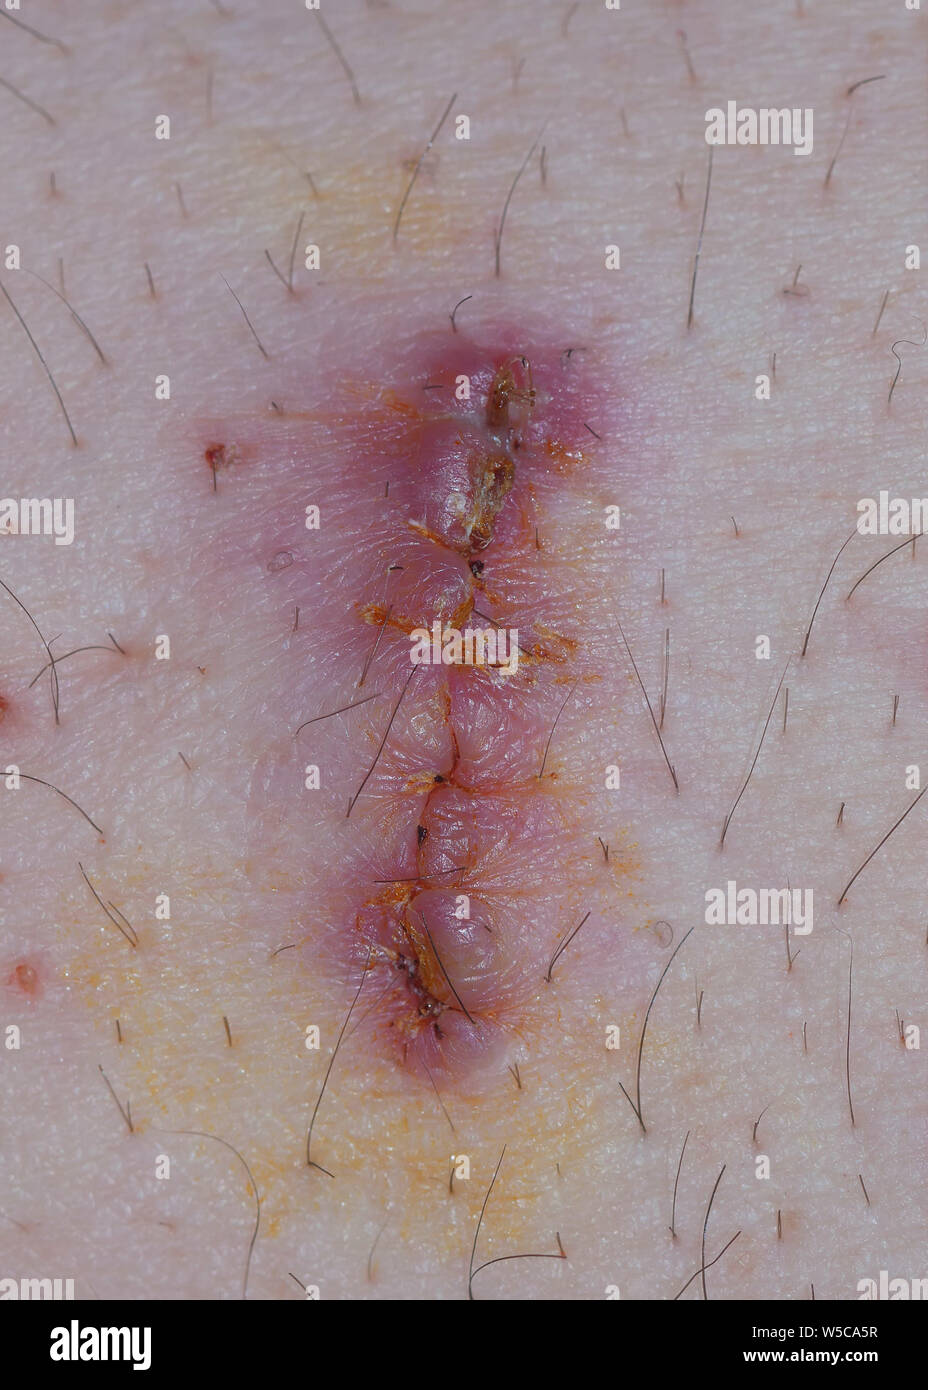 Pus Wound Stock Photos & Pus Wound Stock Images - Alamy